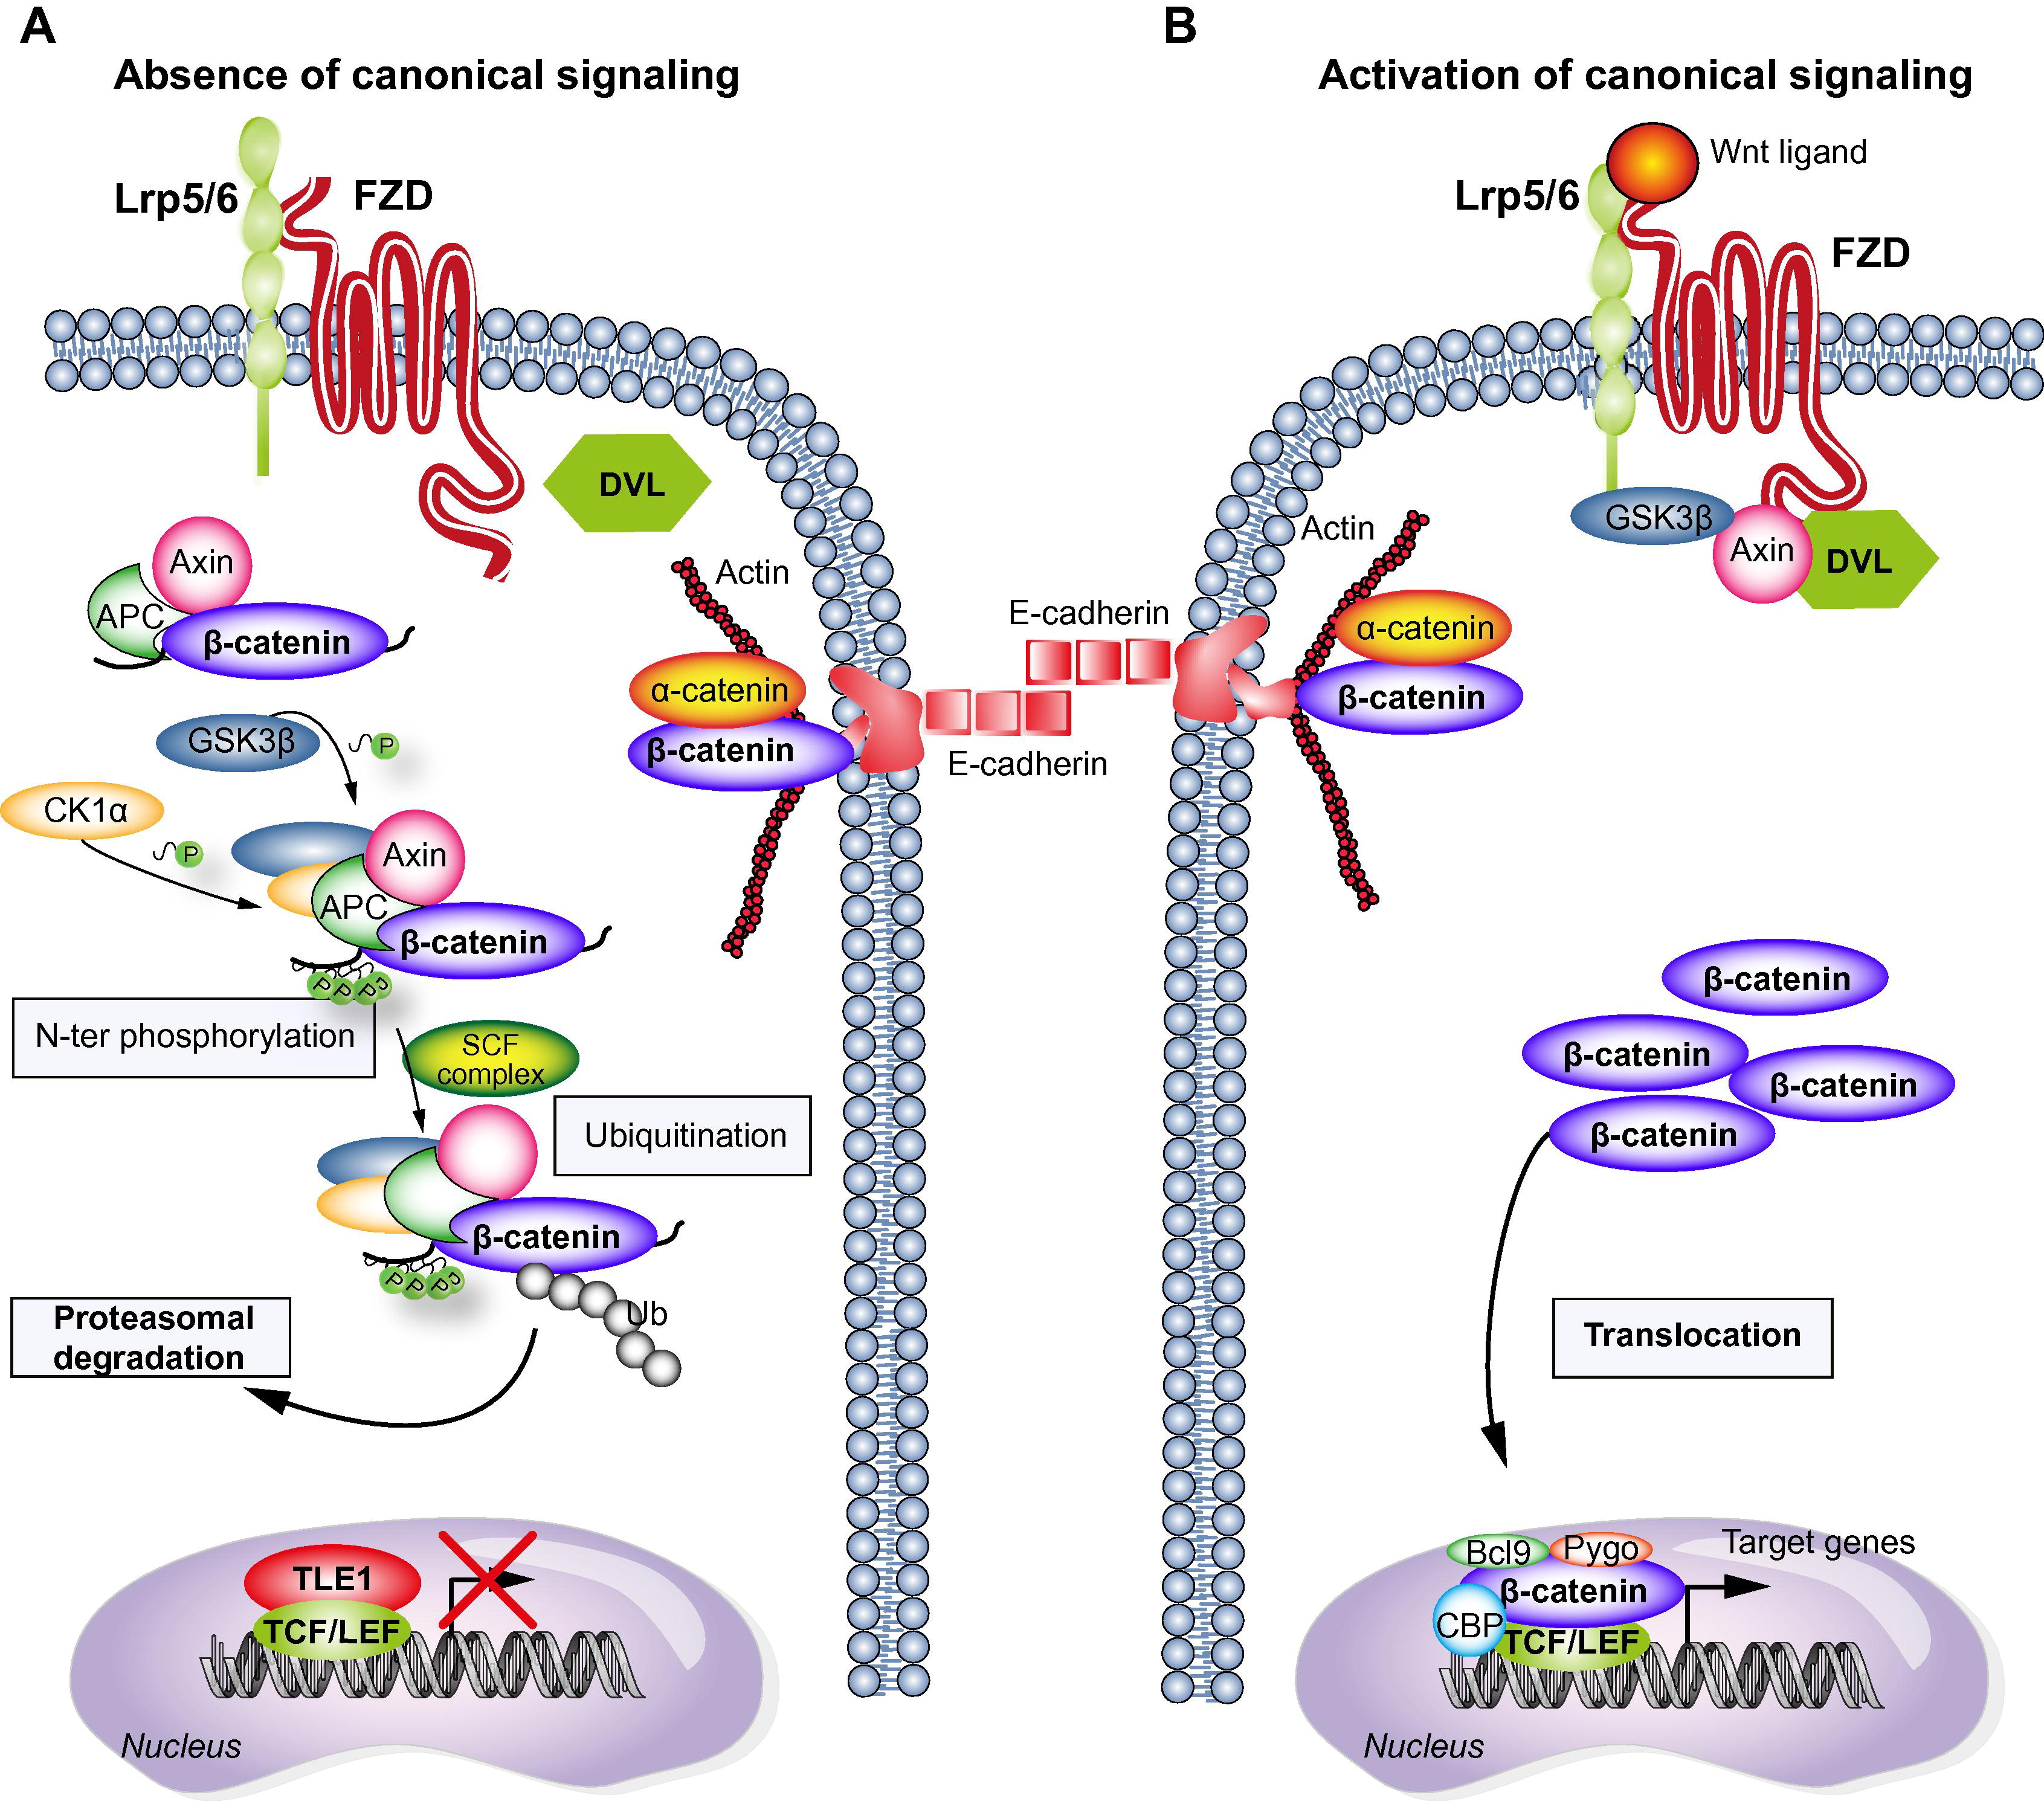 canonical and non canonical signaling promotes breast cancer tumor initiating cells Chapter three - ikk/nuclear factor-kappab and oncogenesis: roles in canonical and non-canonical nf-kappab signaling promotes breast cancer tumor-initiating cells.